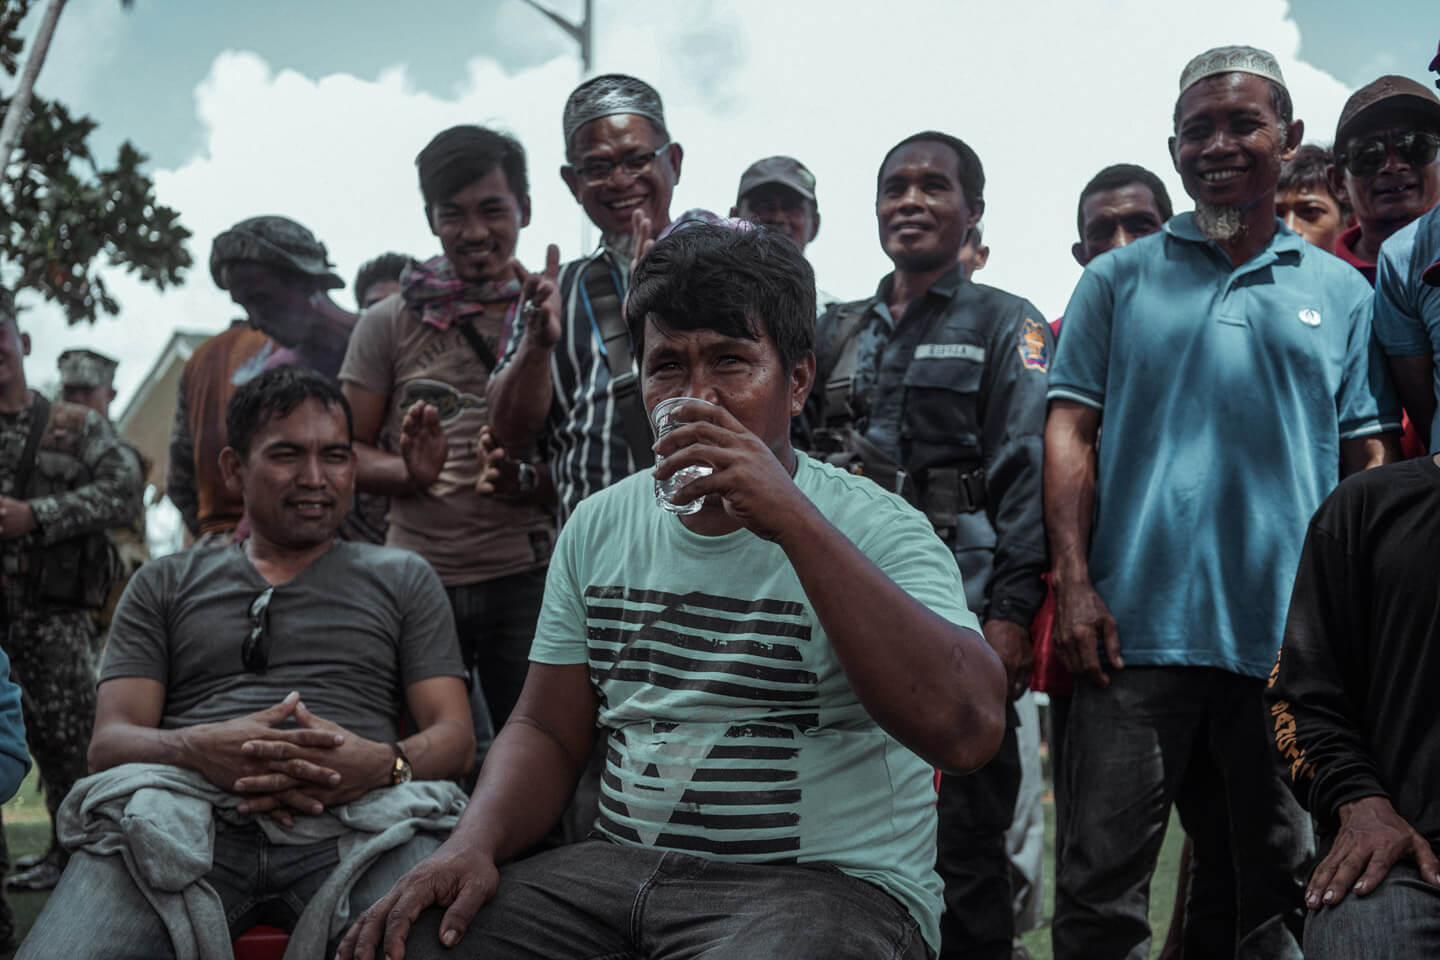 Community leaders in Tawi-Tawi try the filters for the first time